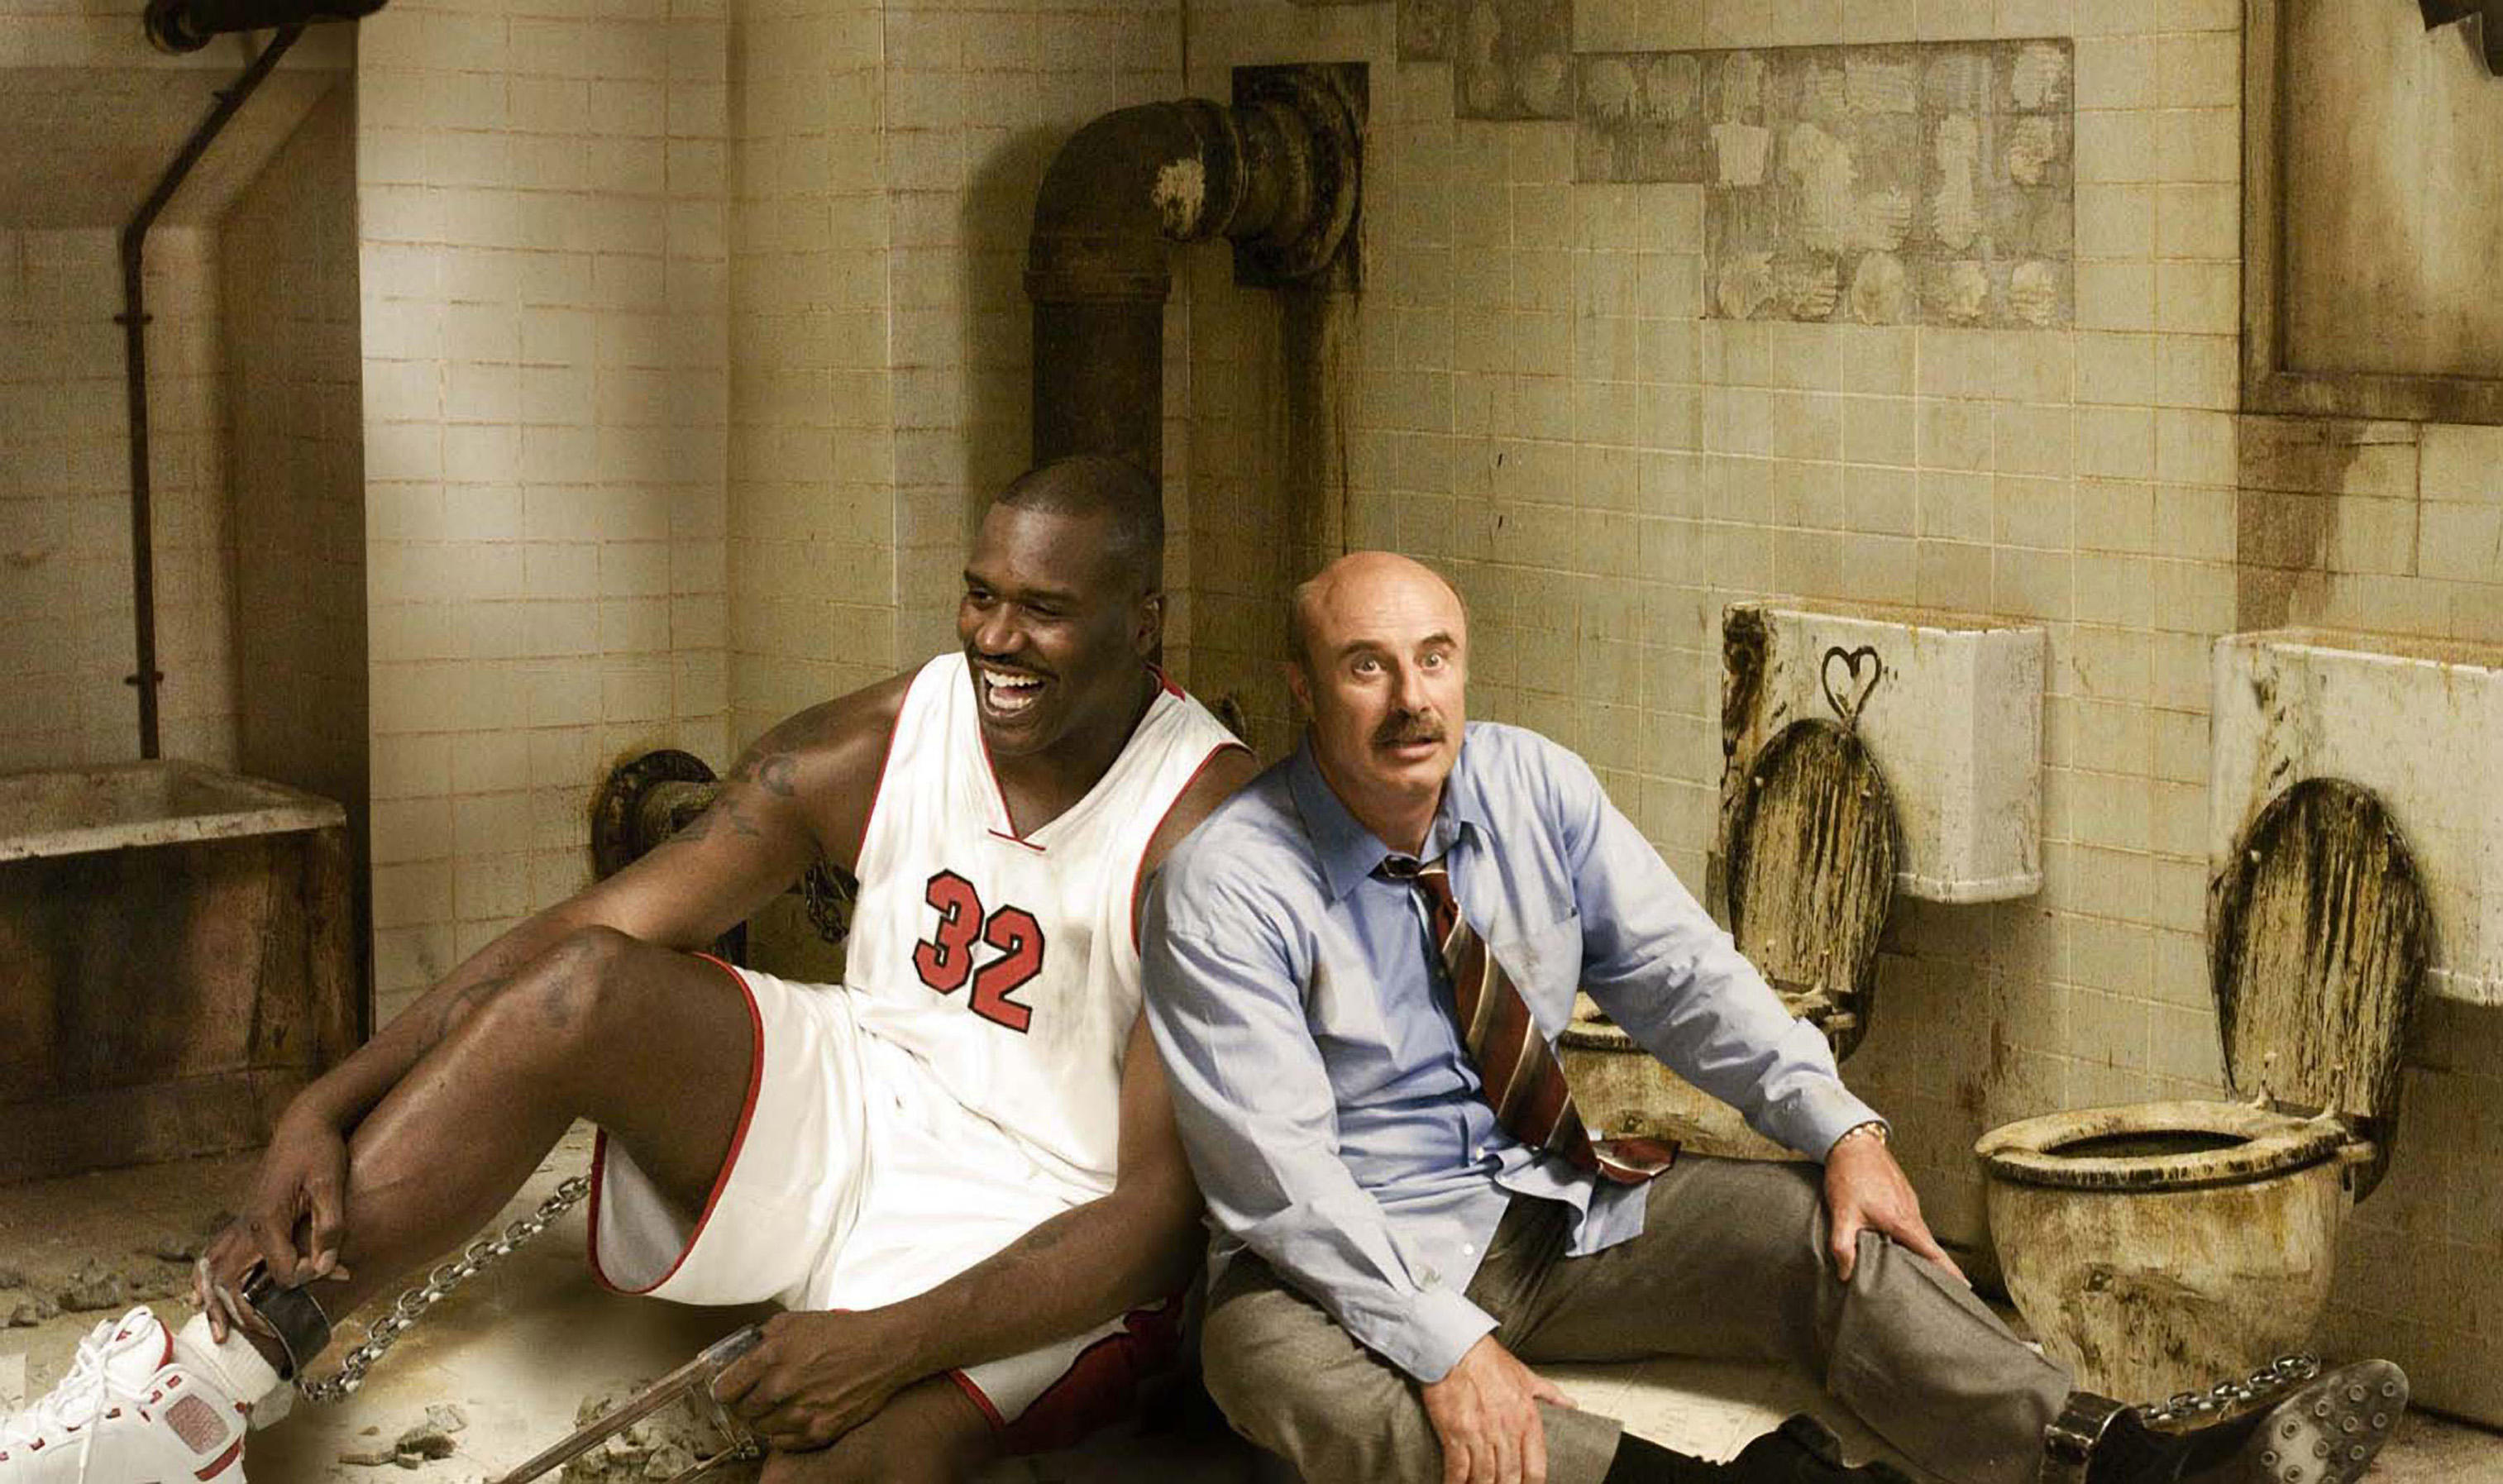 Shag (SHAQUILLE O'NEAL) and Dr. Phil (DR. PHIL MCGRAW) spoofing 'Saw' in a scene from SCARY MOVIE 4